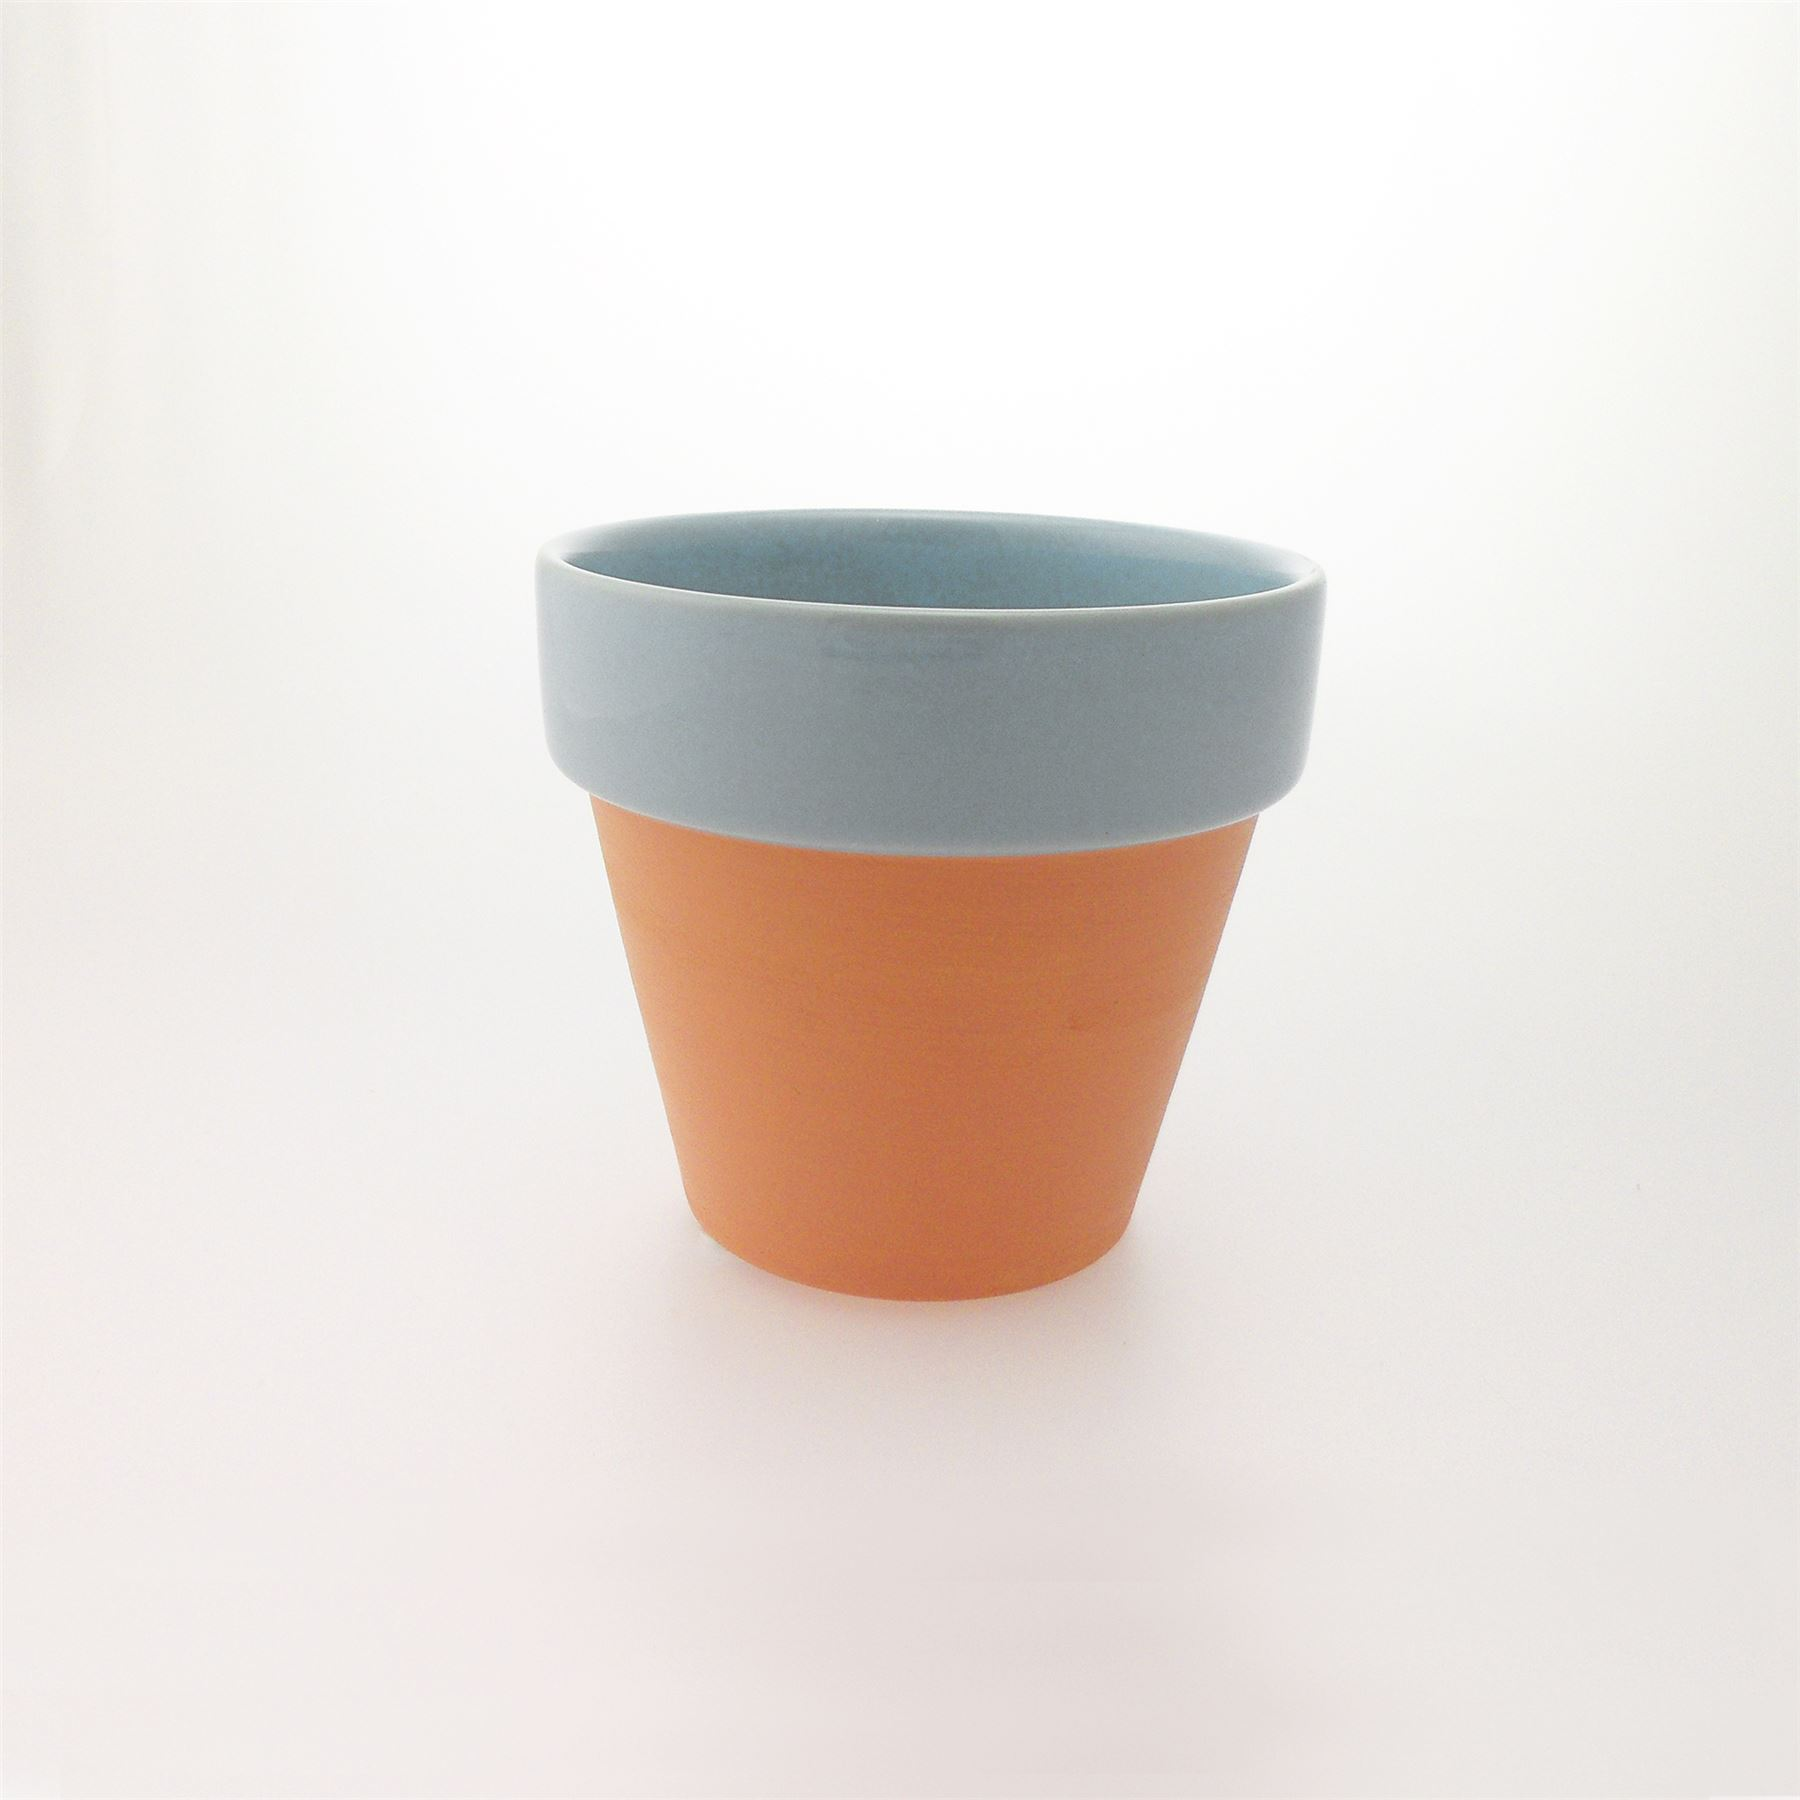 Decorative terracotta plant little flower pots clay for Small clay flower pots